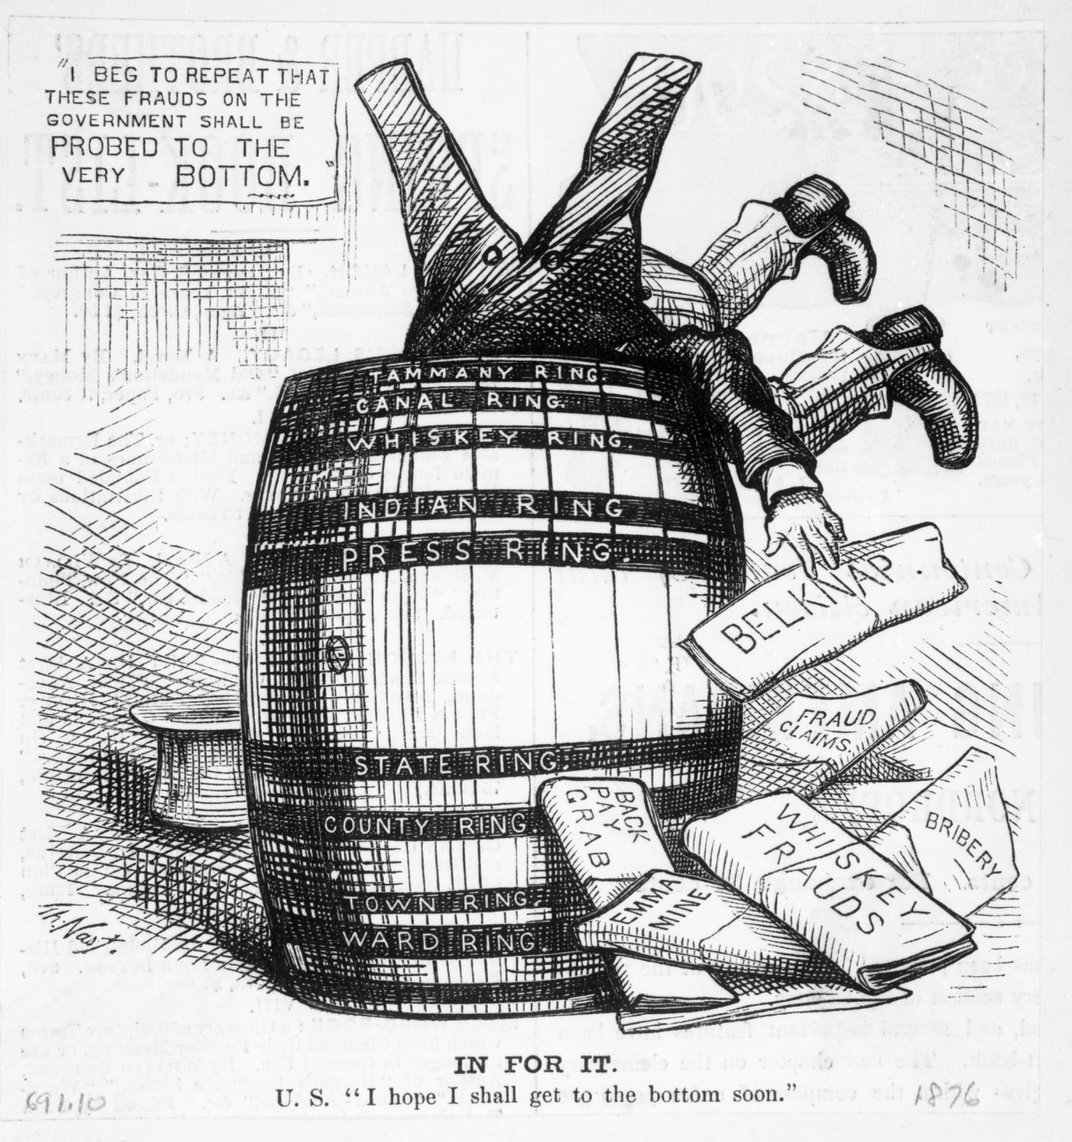 The Whiskey Wars That Left Brooklyn in Ruins